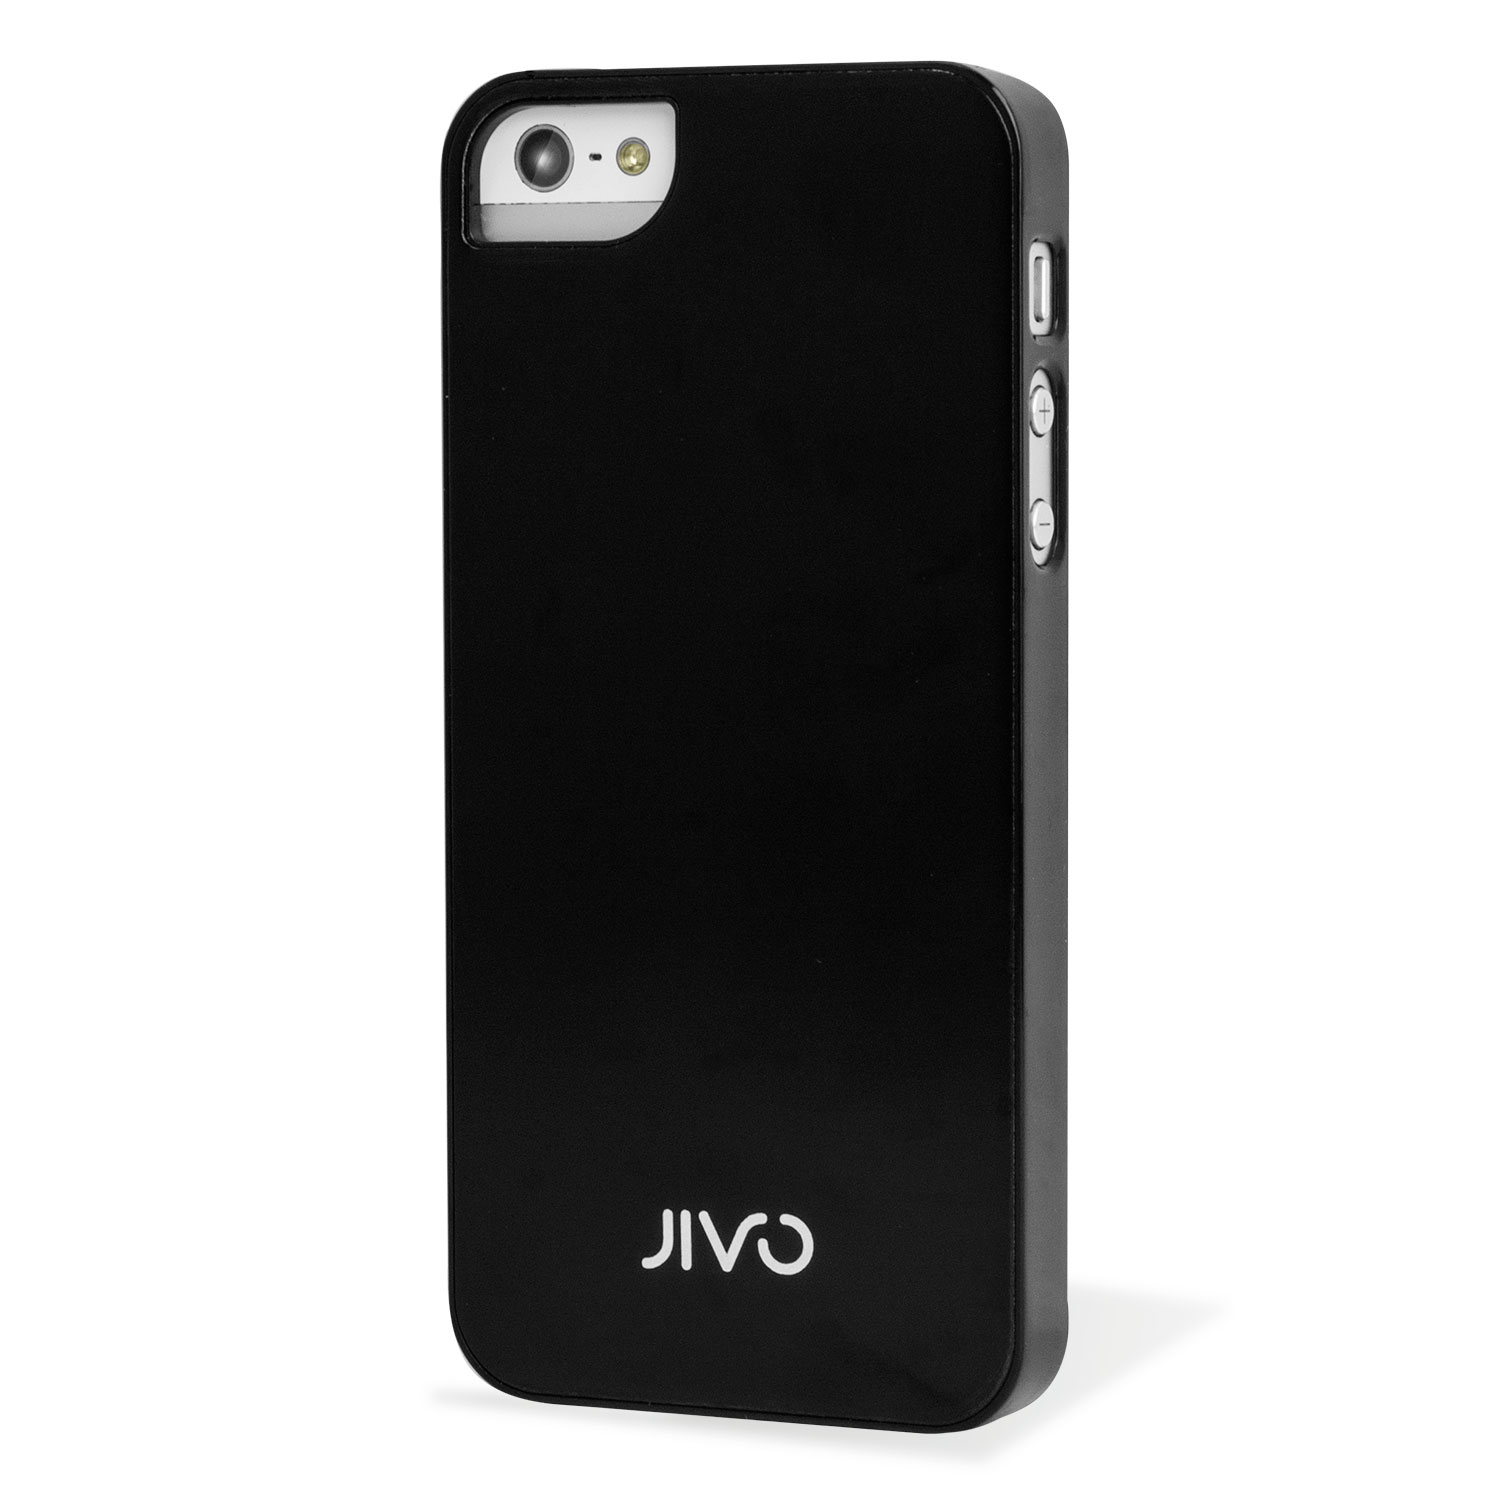 "Jivo ""Alu-Case"" One-Piece Snap-On iPhone 5S / 5 Case - Black"